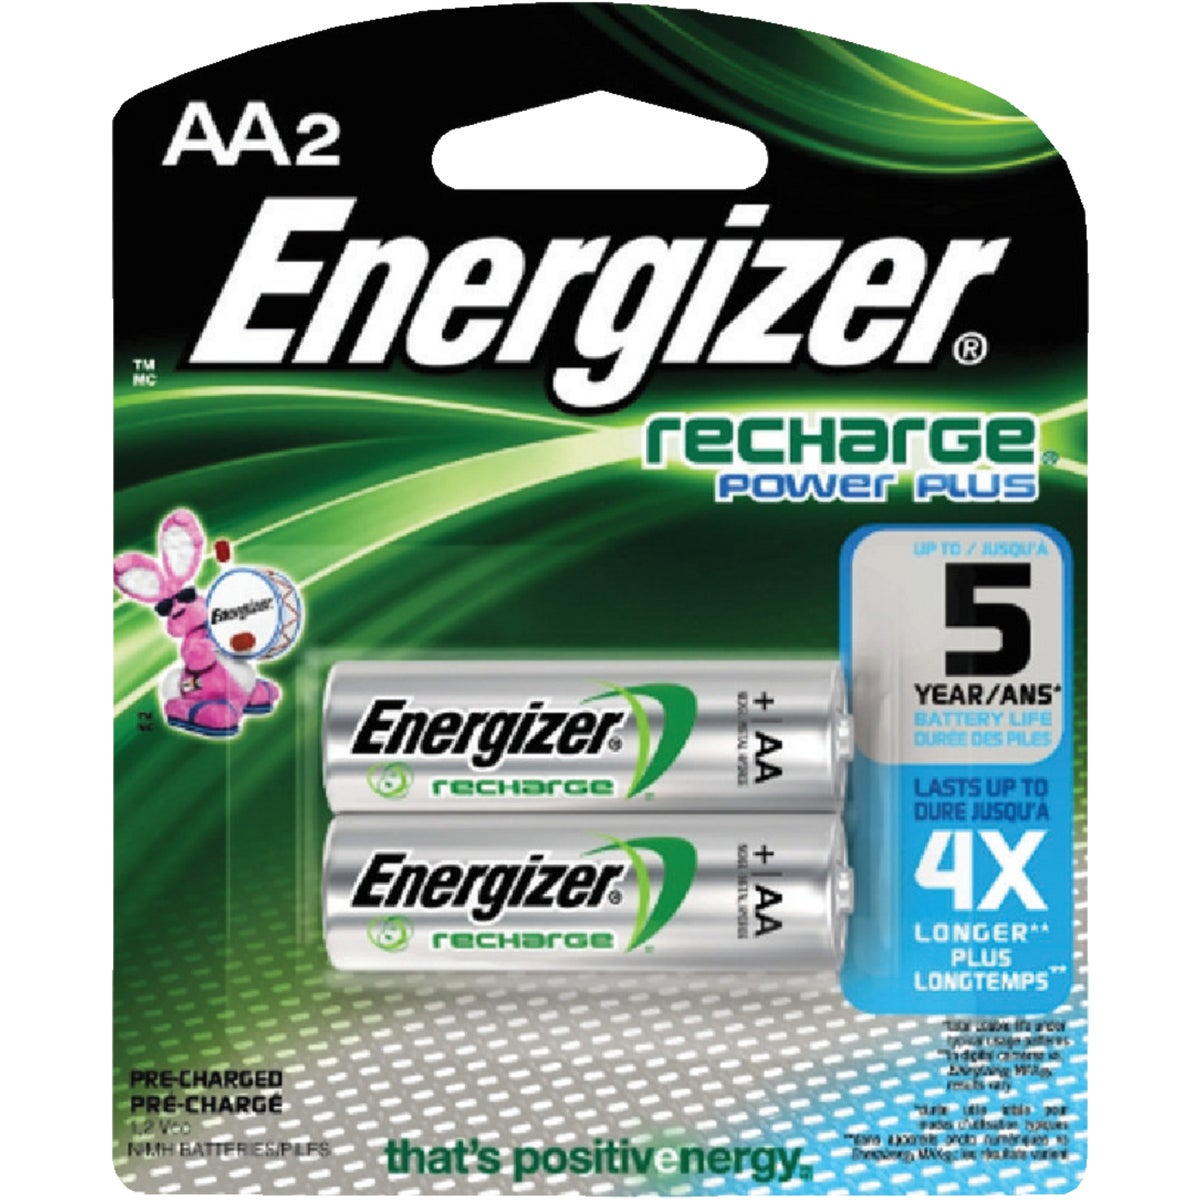 2CD AA RECHARGE BATTERY - NH15BP2 by Energizer